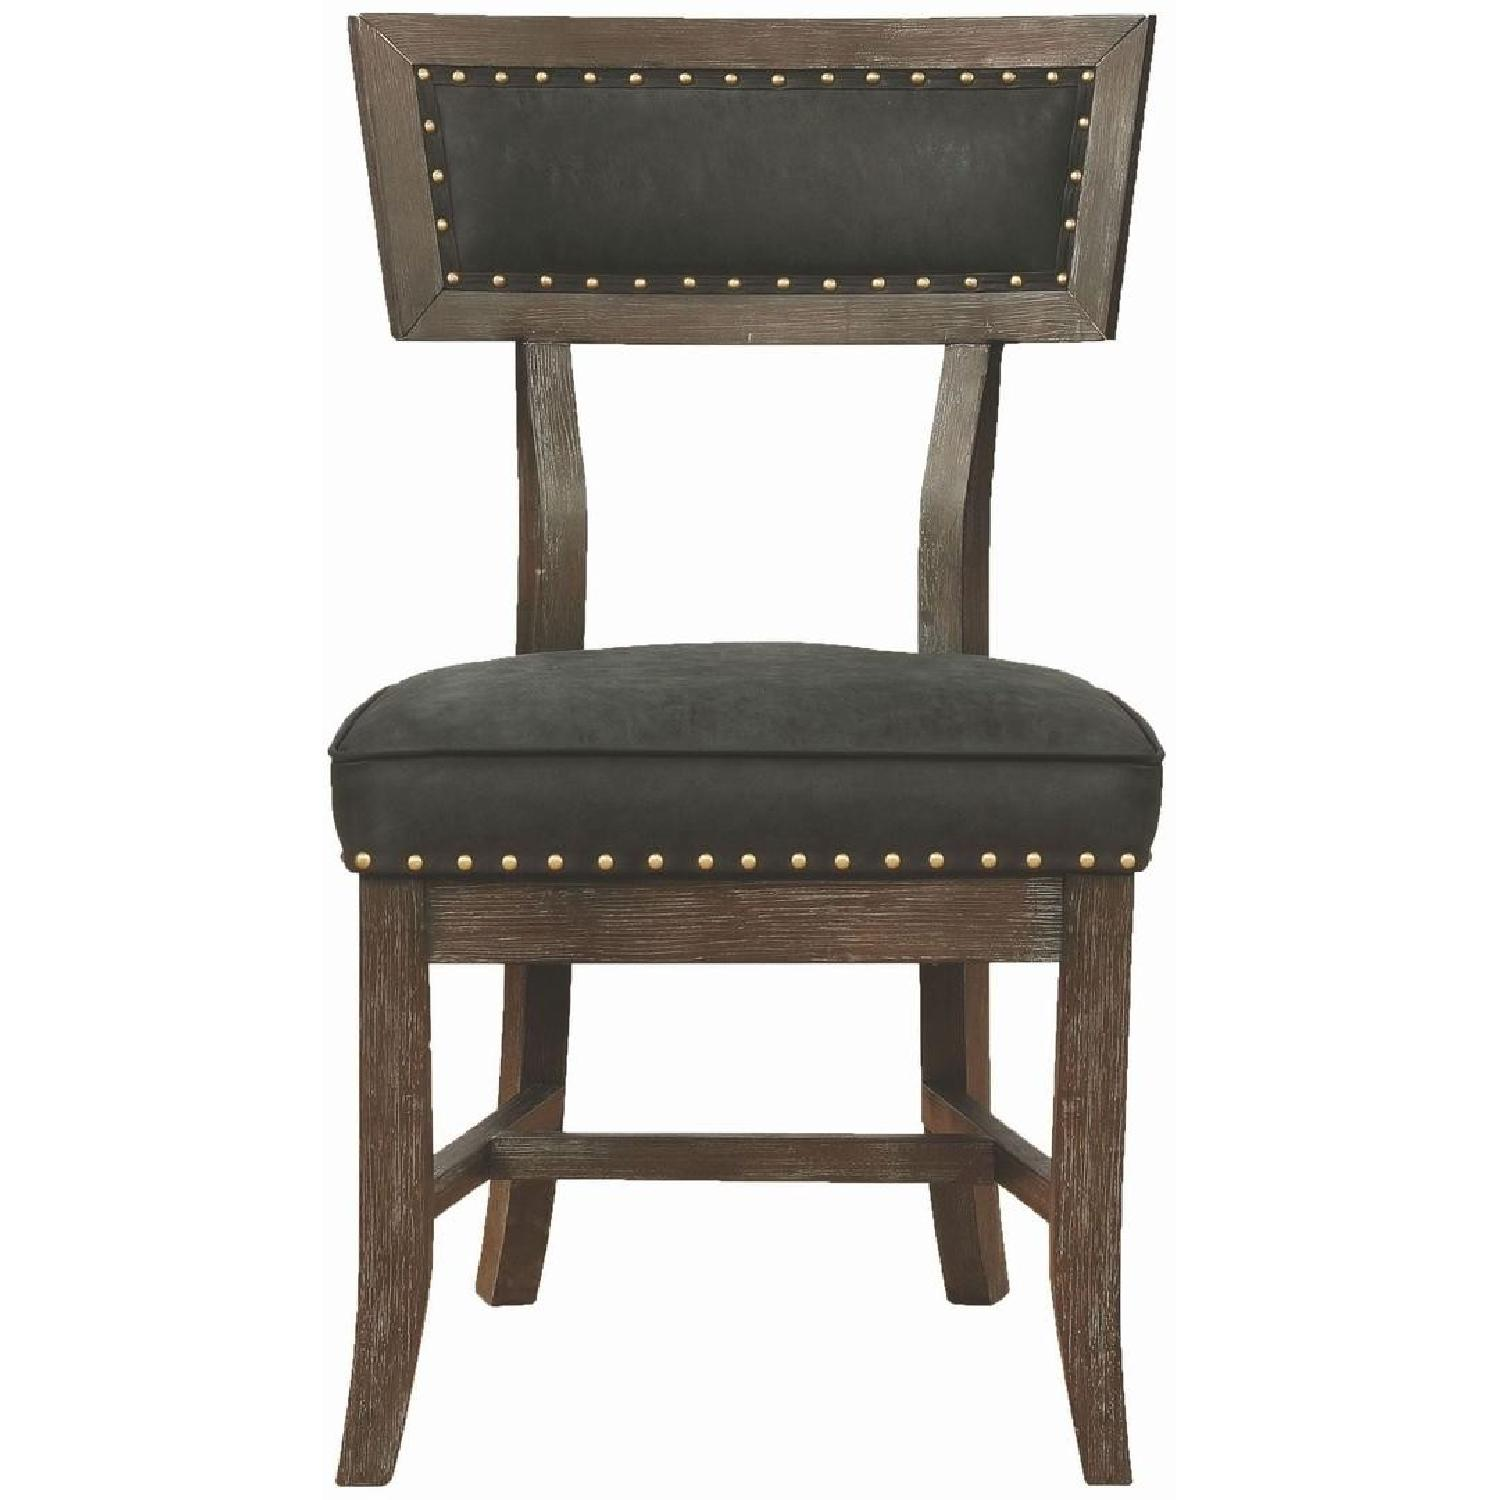 Rustic Dining Chair w/ Black Cushion & Nailhead Accent - image-0